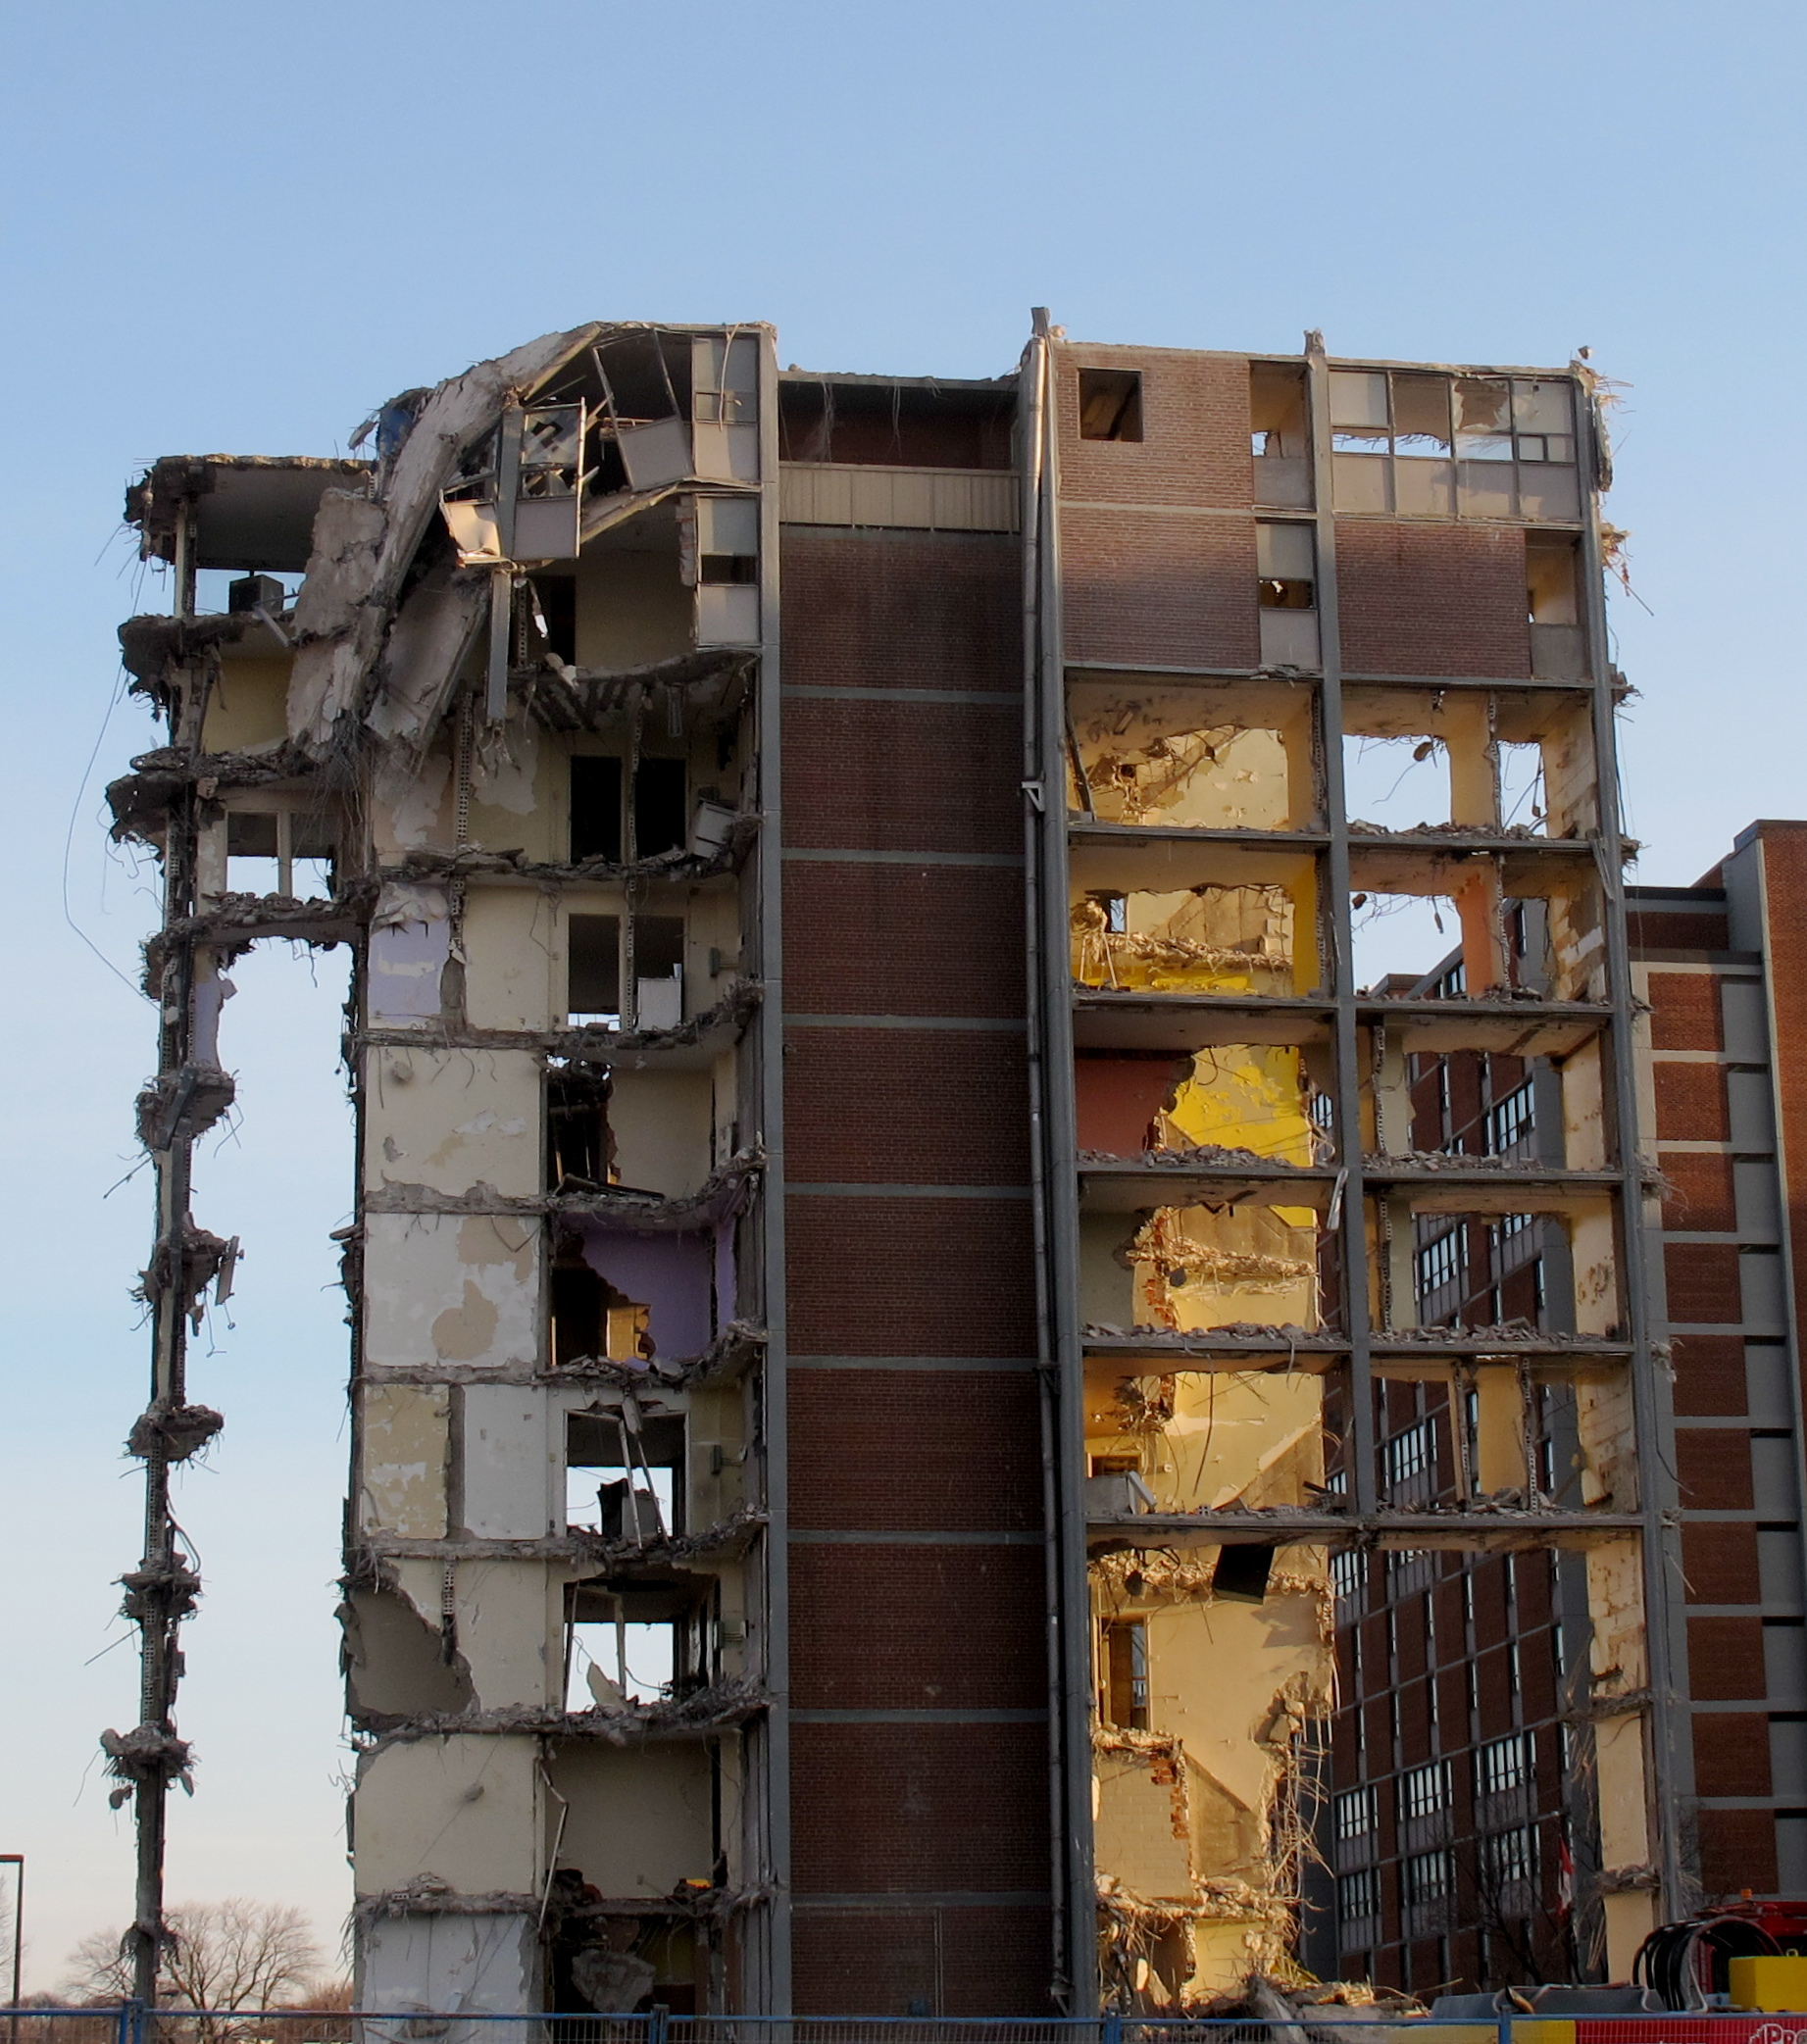 Regent Park Apartments: TOWER IN A GARDEN: DEMOLISHED